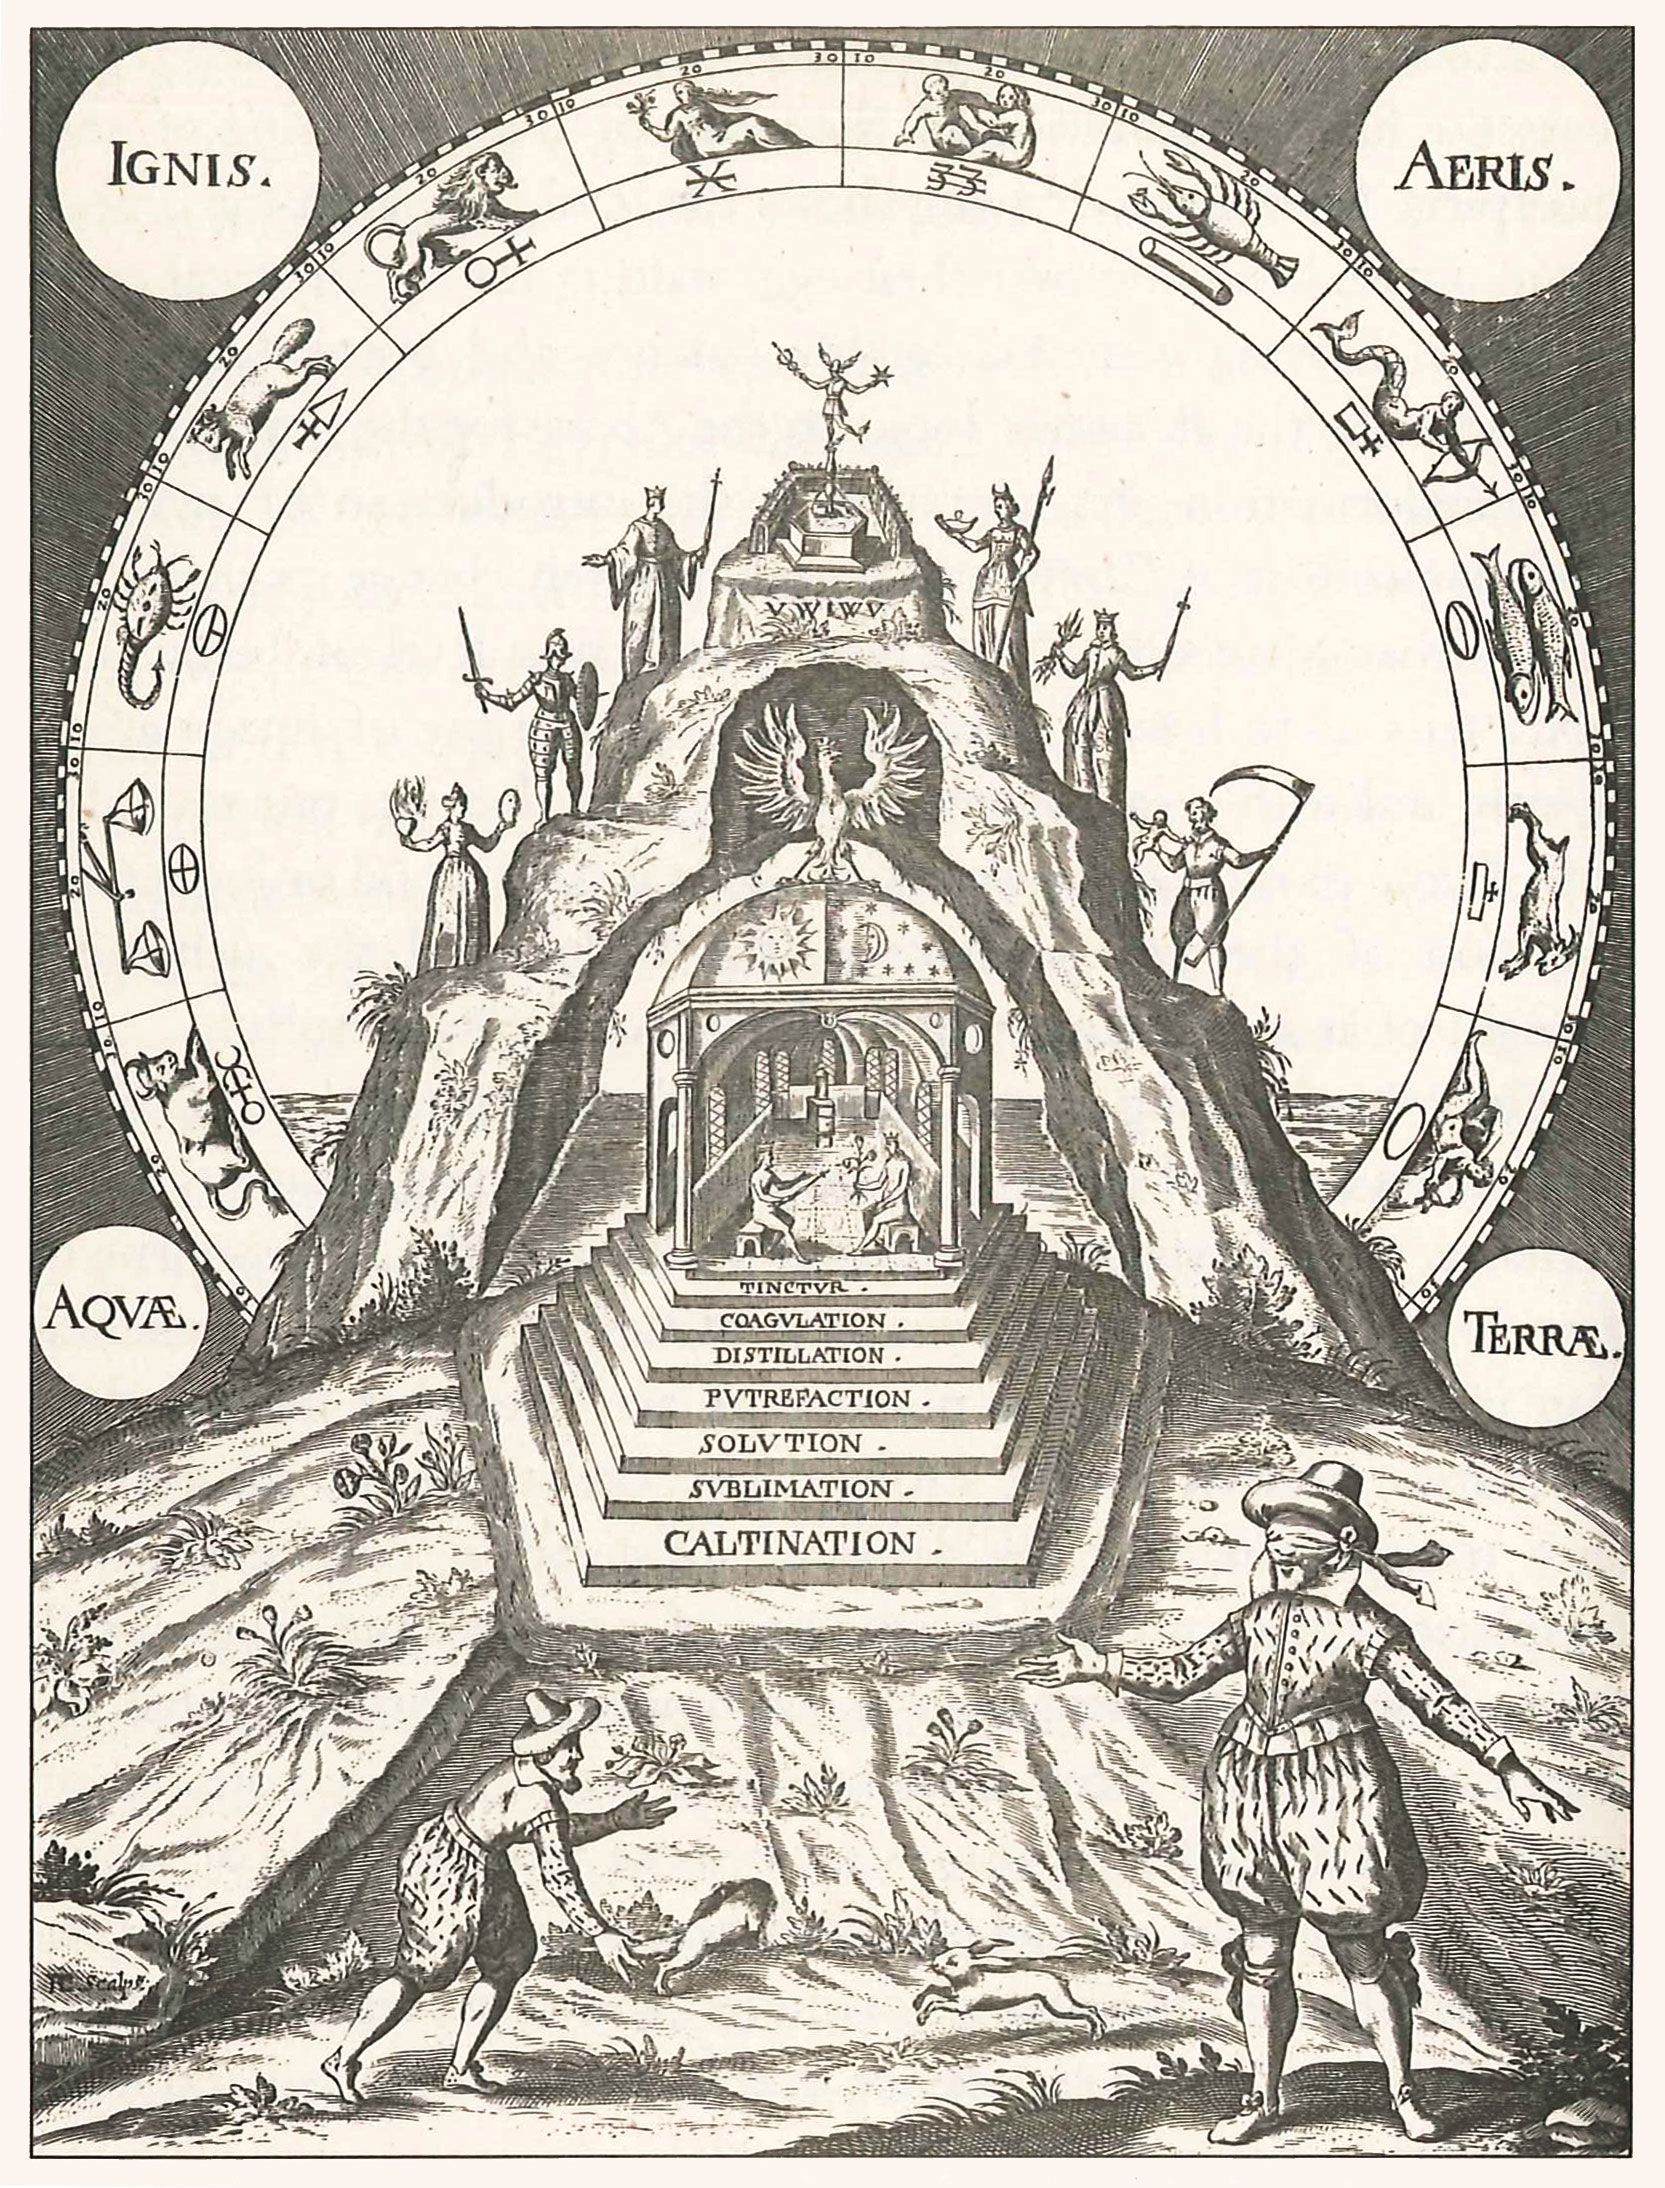 cave of the ancients stefan michelspacher 1616 diagram 3 from cabala spiegel der kunst und natur in alchymia kabbalah mirror of art and nature in  [ 1665 x 2188 Pixel ]